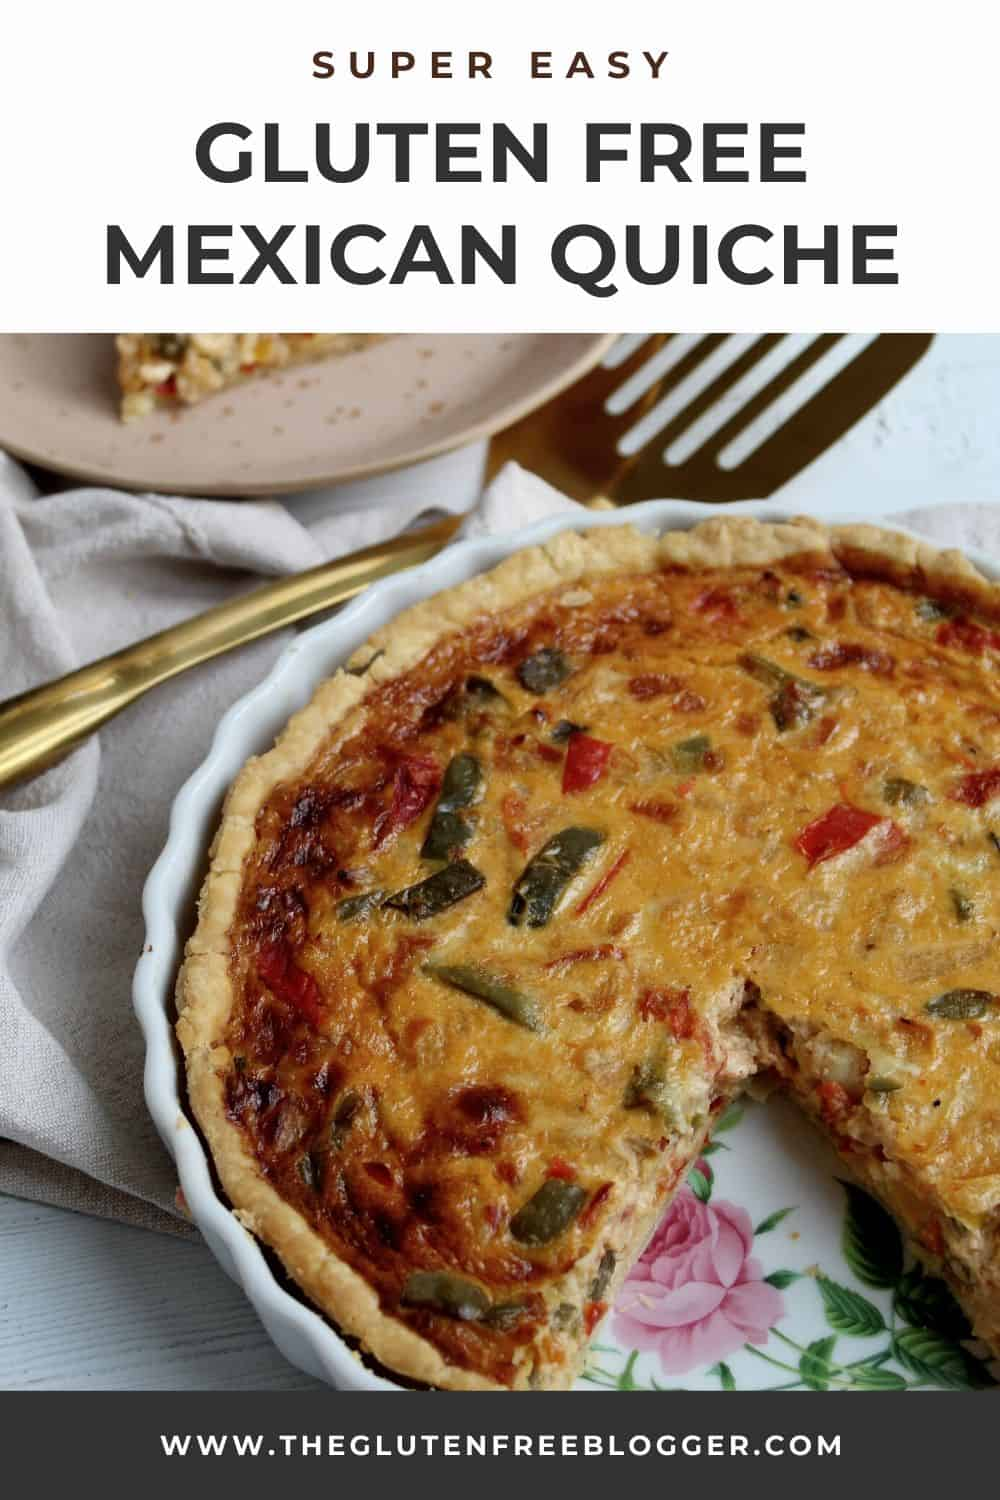 gluten free quiche recipe easy gluten free pastry mexican food (1)